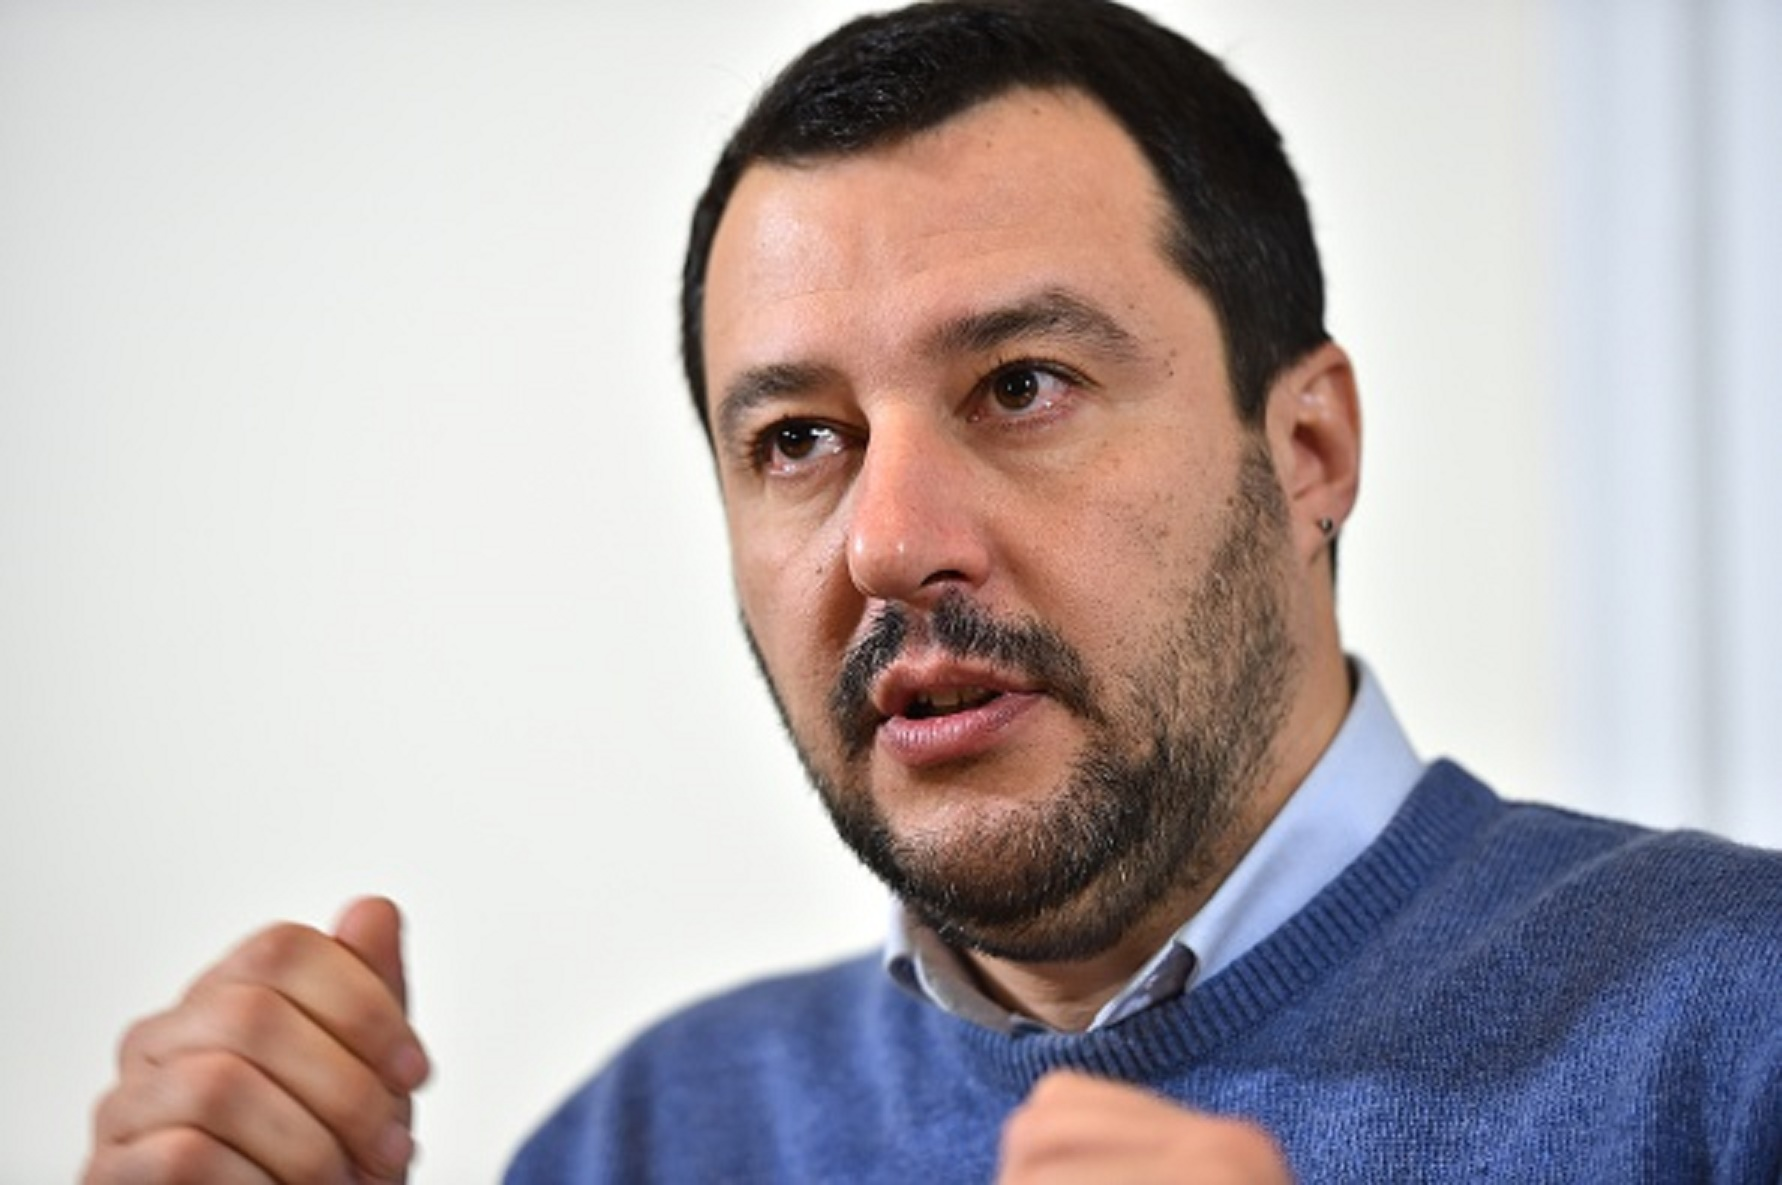 salvini - photo #18